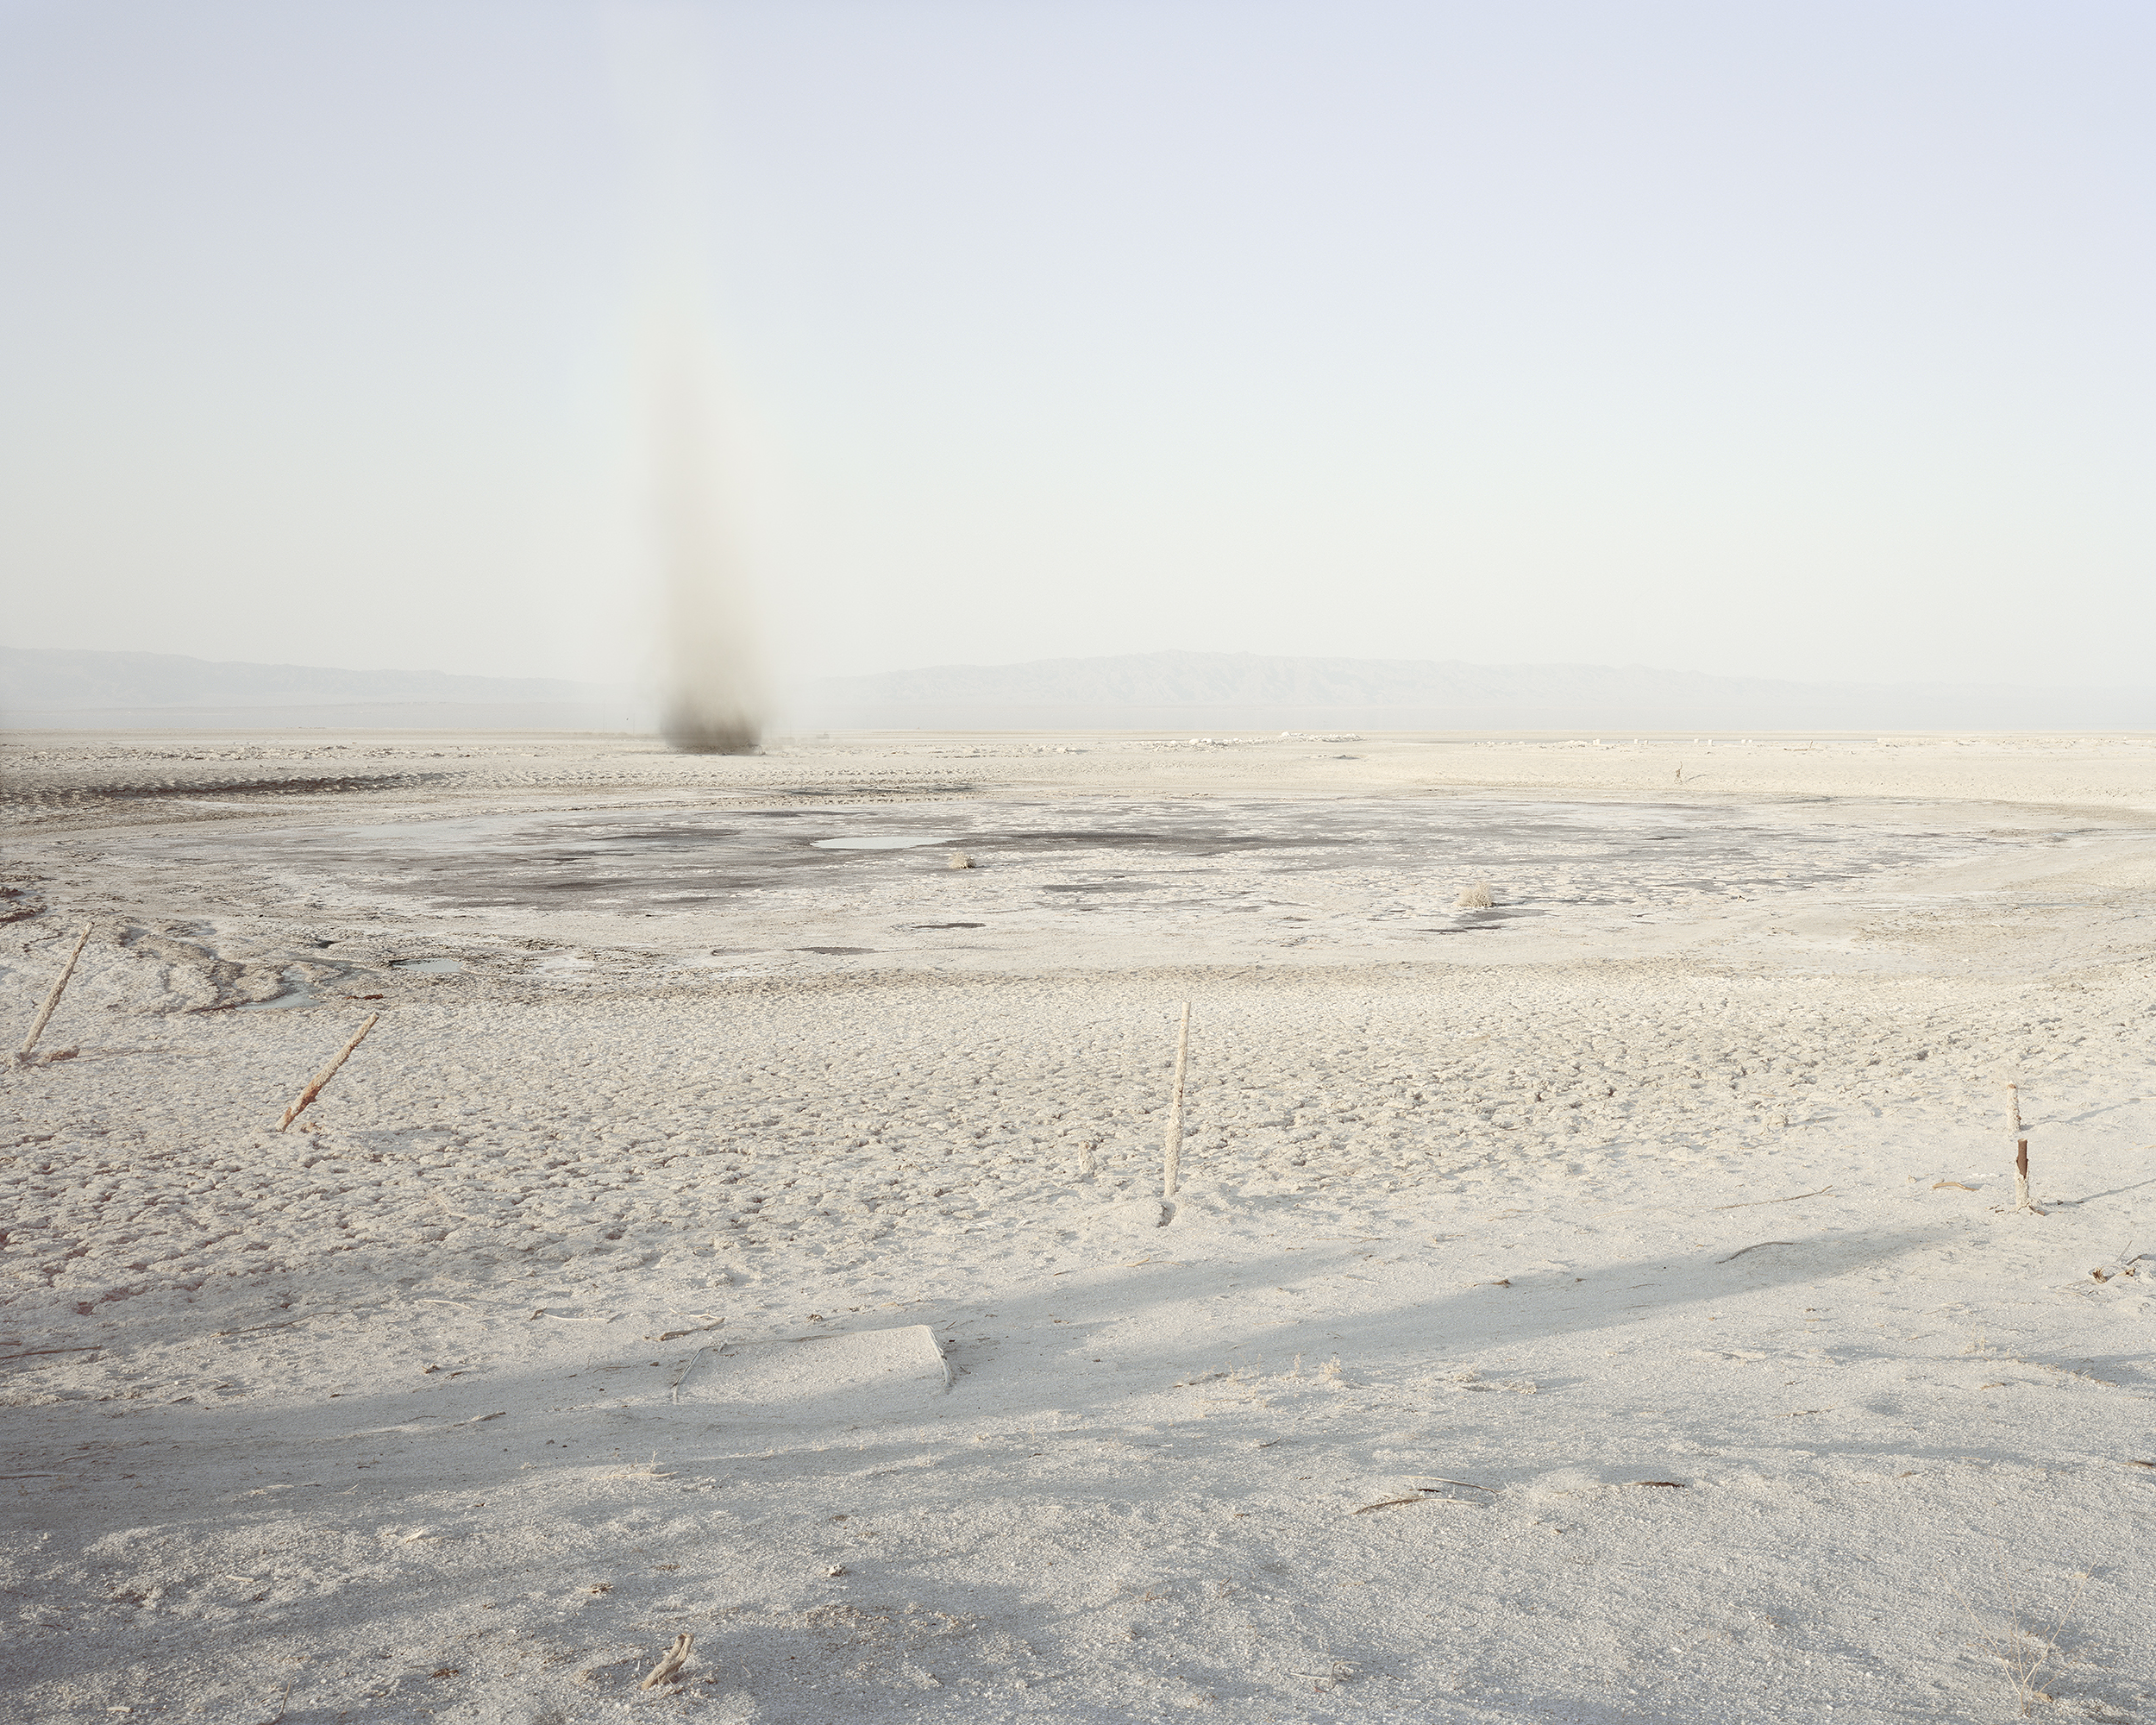 Dust Devil, Salton Sea, California